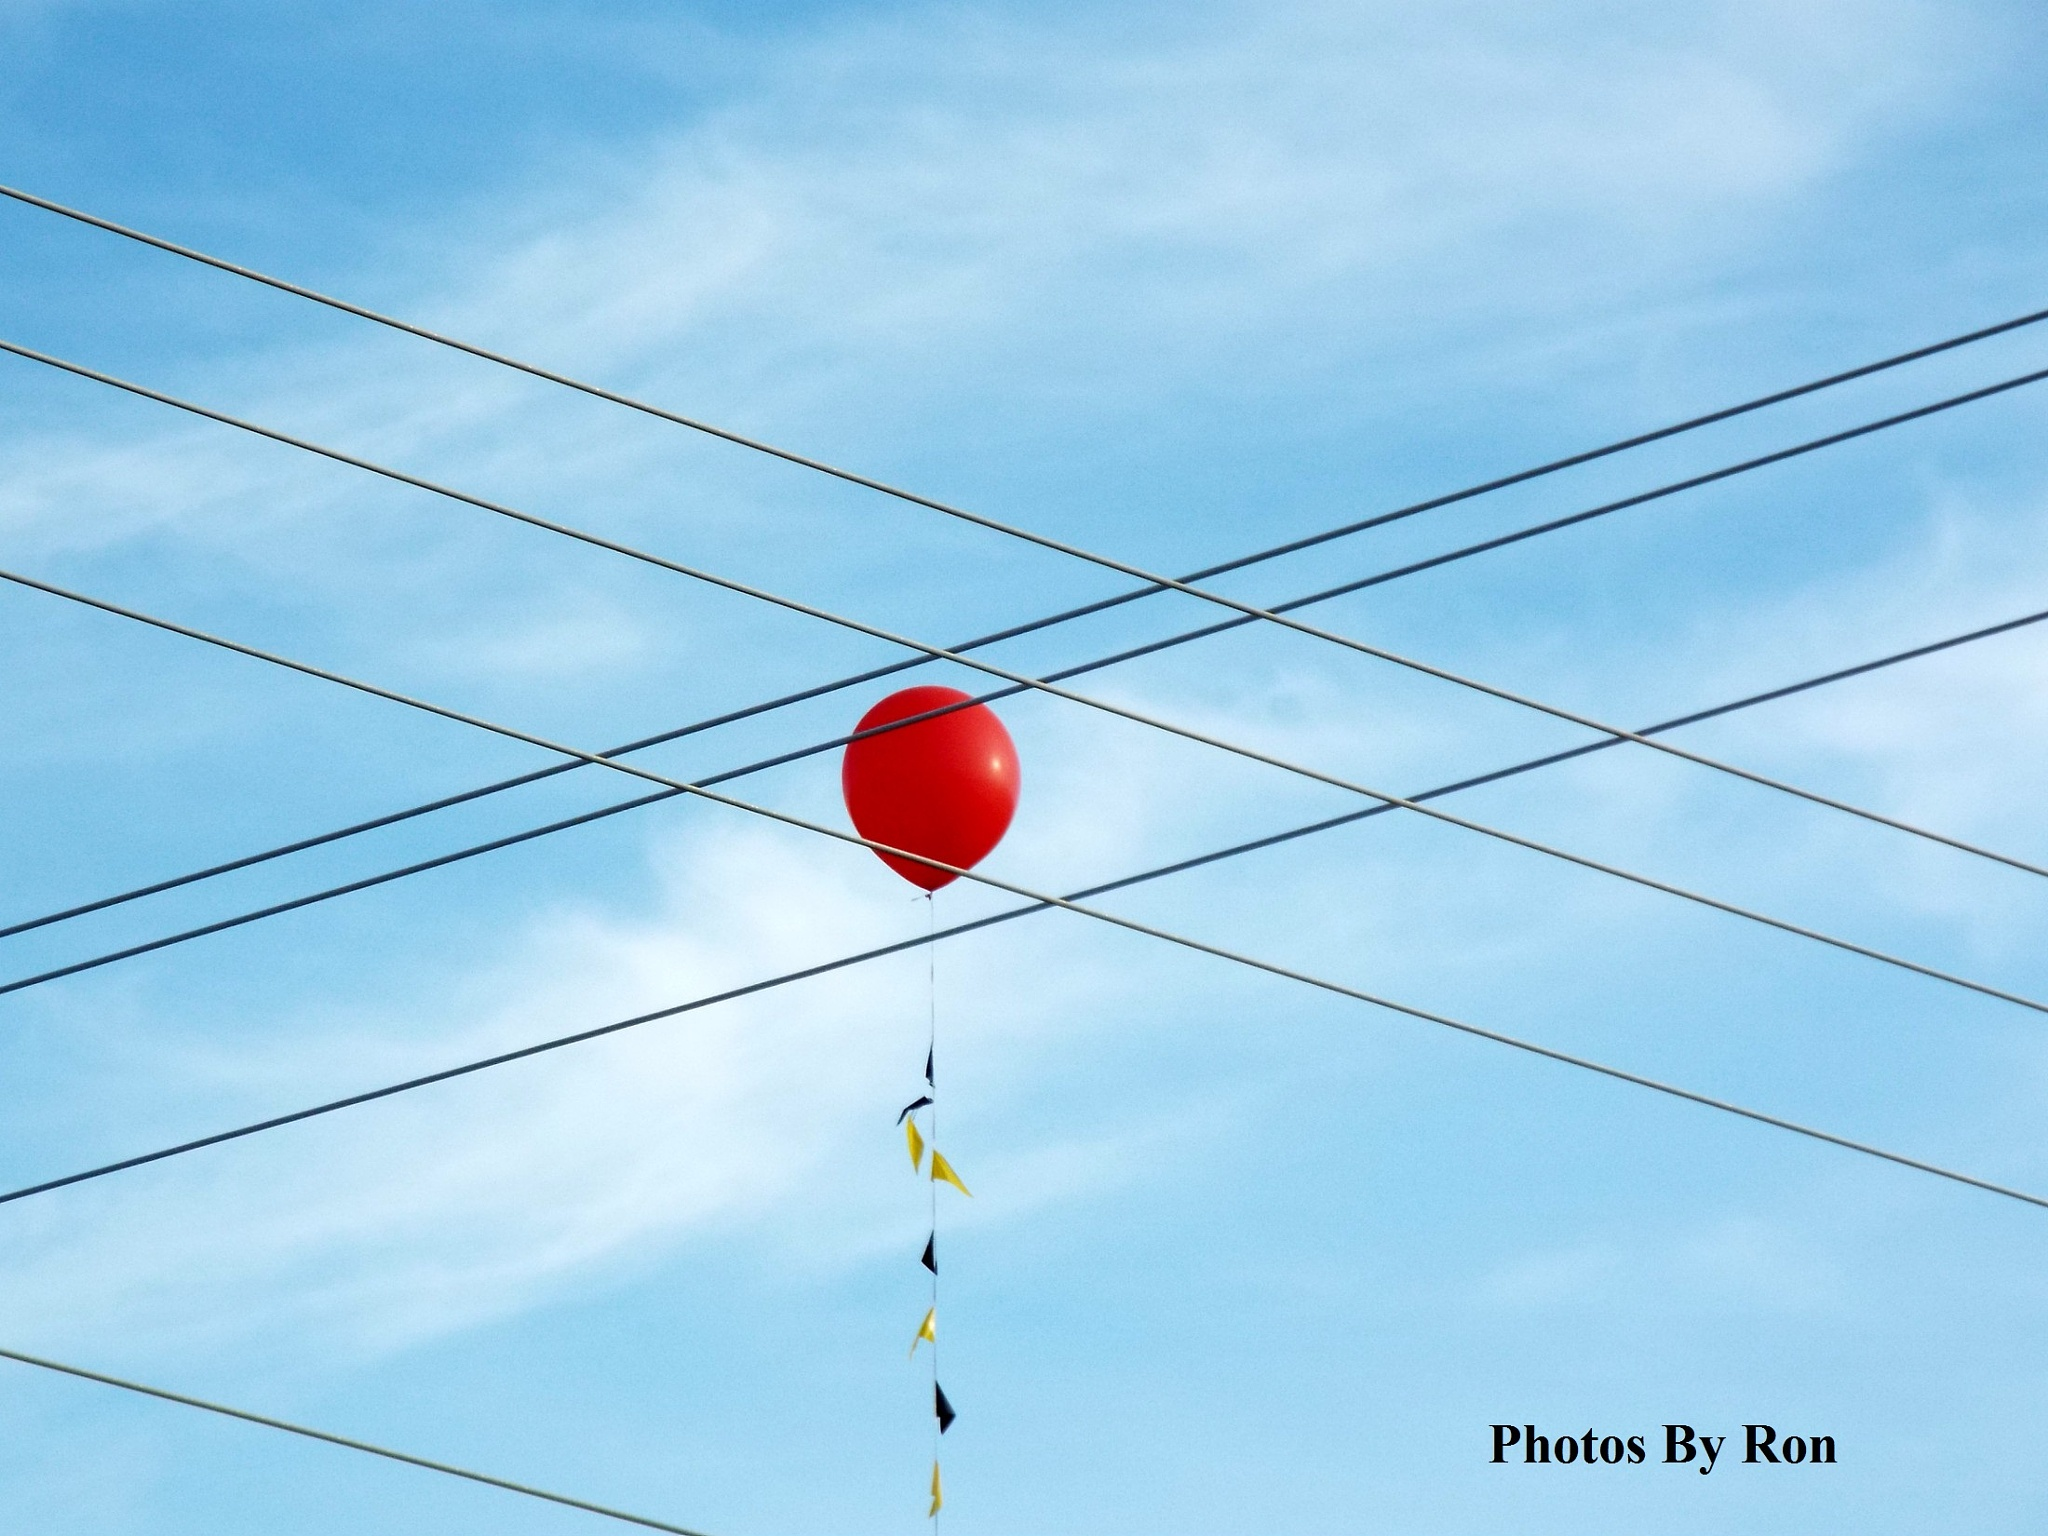 """""""The Red Balloon In The Crosshairs"""" by Ron Berkley"""